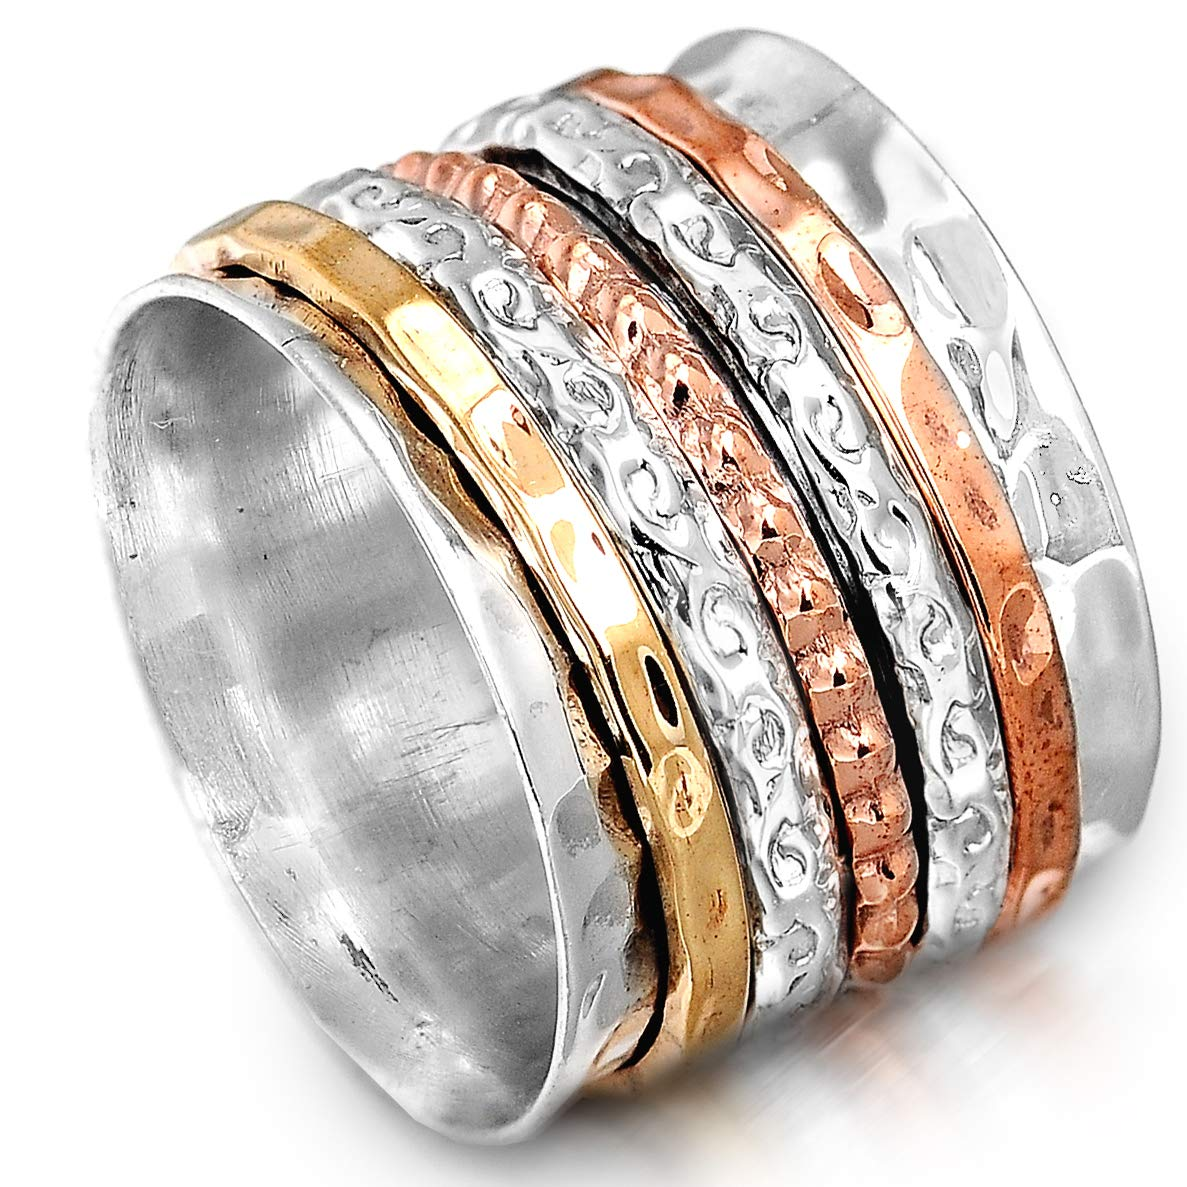 29009125d3483 Boho-Magic Spinner Ring for Women | 925 Sterling Silver Ring with Copper,  Brass & Silver Spinning Bands | Wide Fidget Meditation Anxiety Jewelry | ...